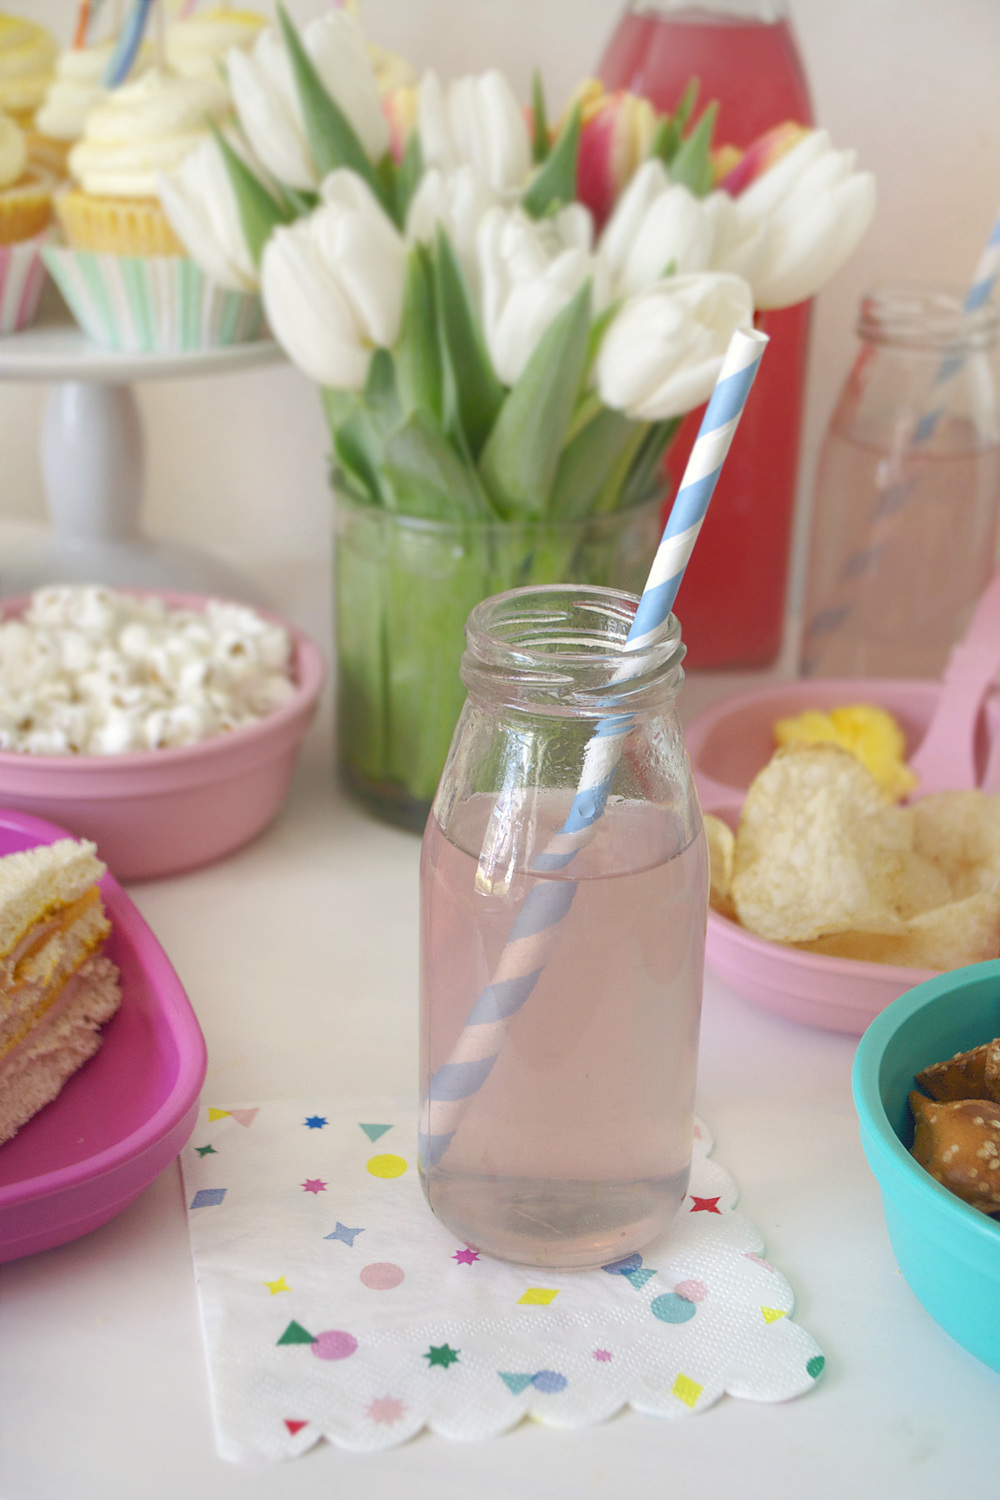 old fashioned milk bottles